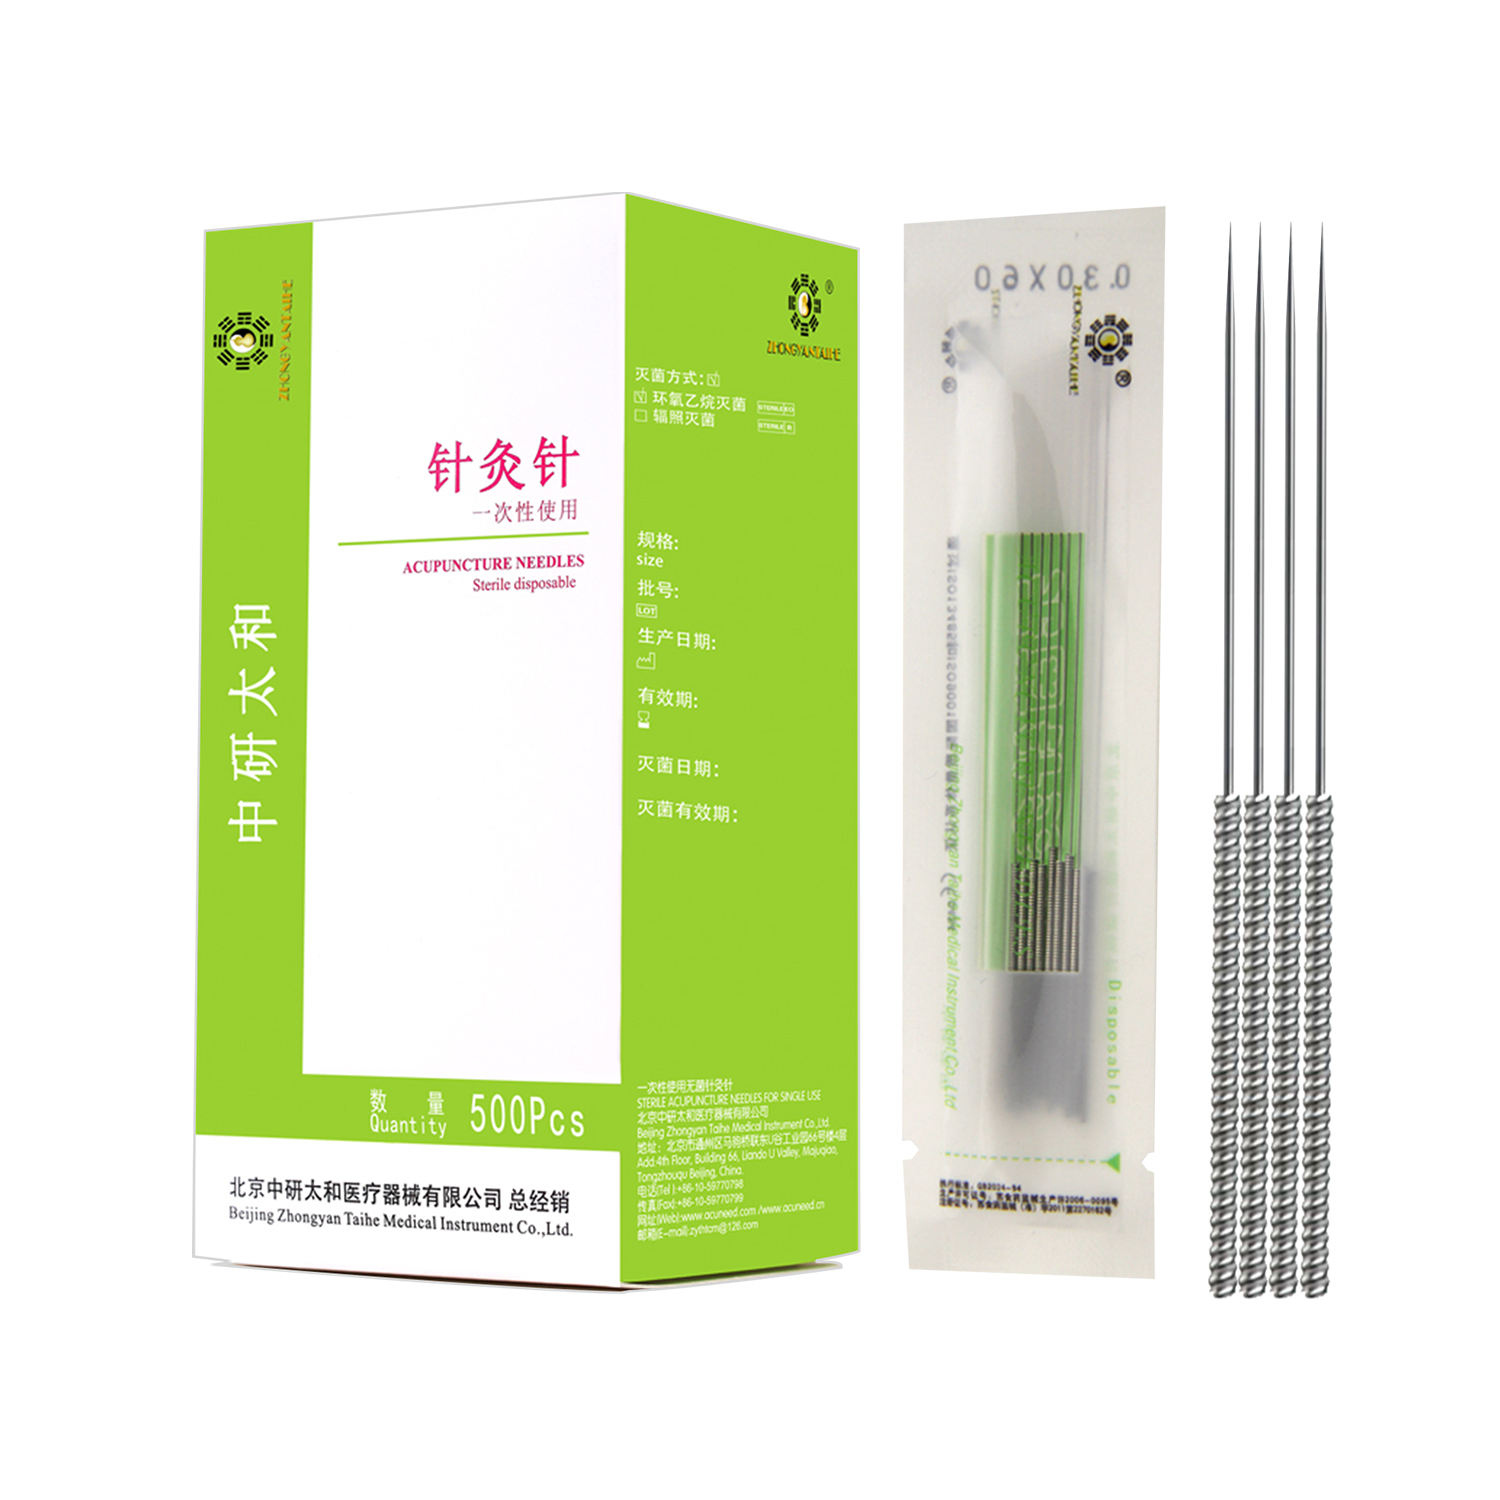 Zhongyan Taihe Painless Medical Sterile Intradermal needle Disposable Acupuncture Needles Wholesale